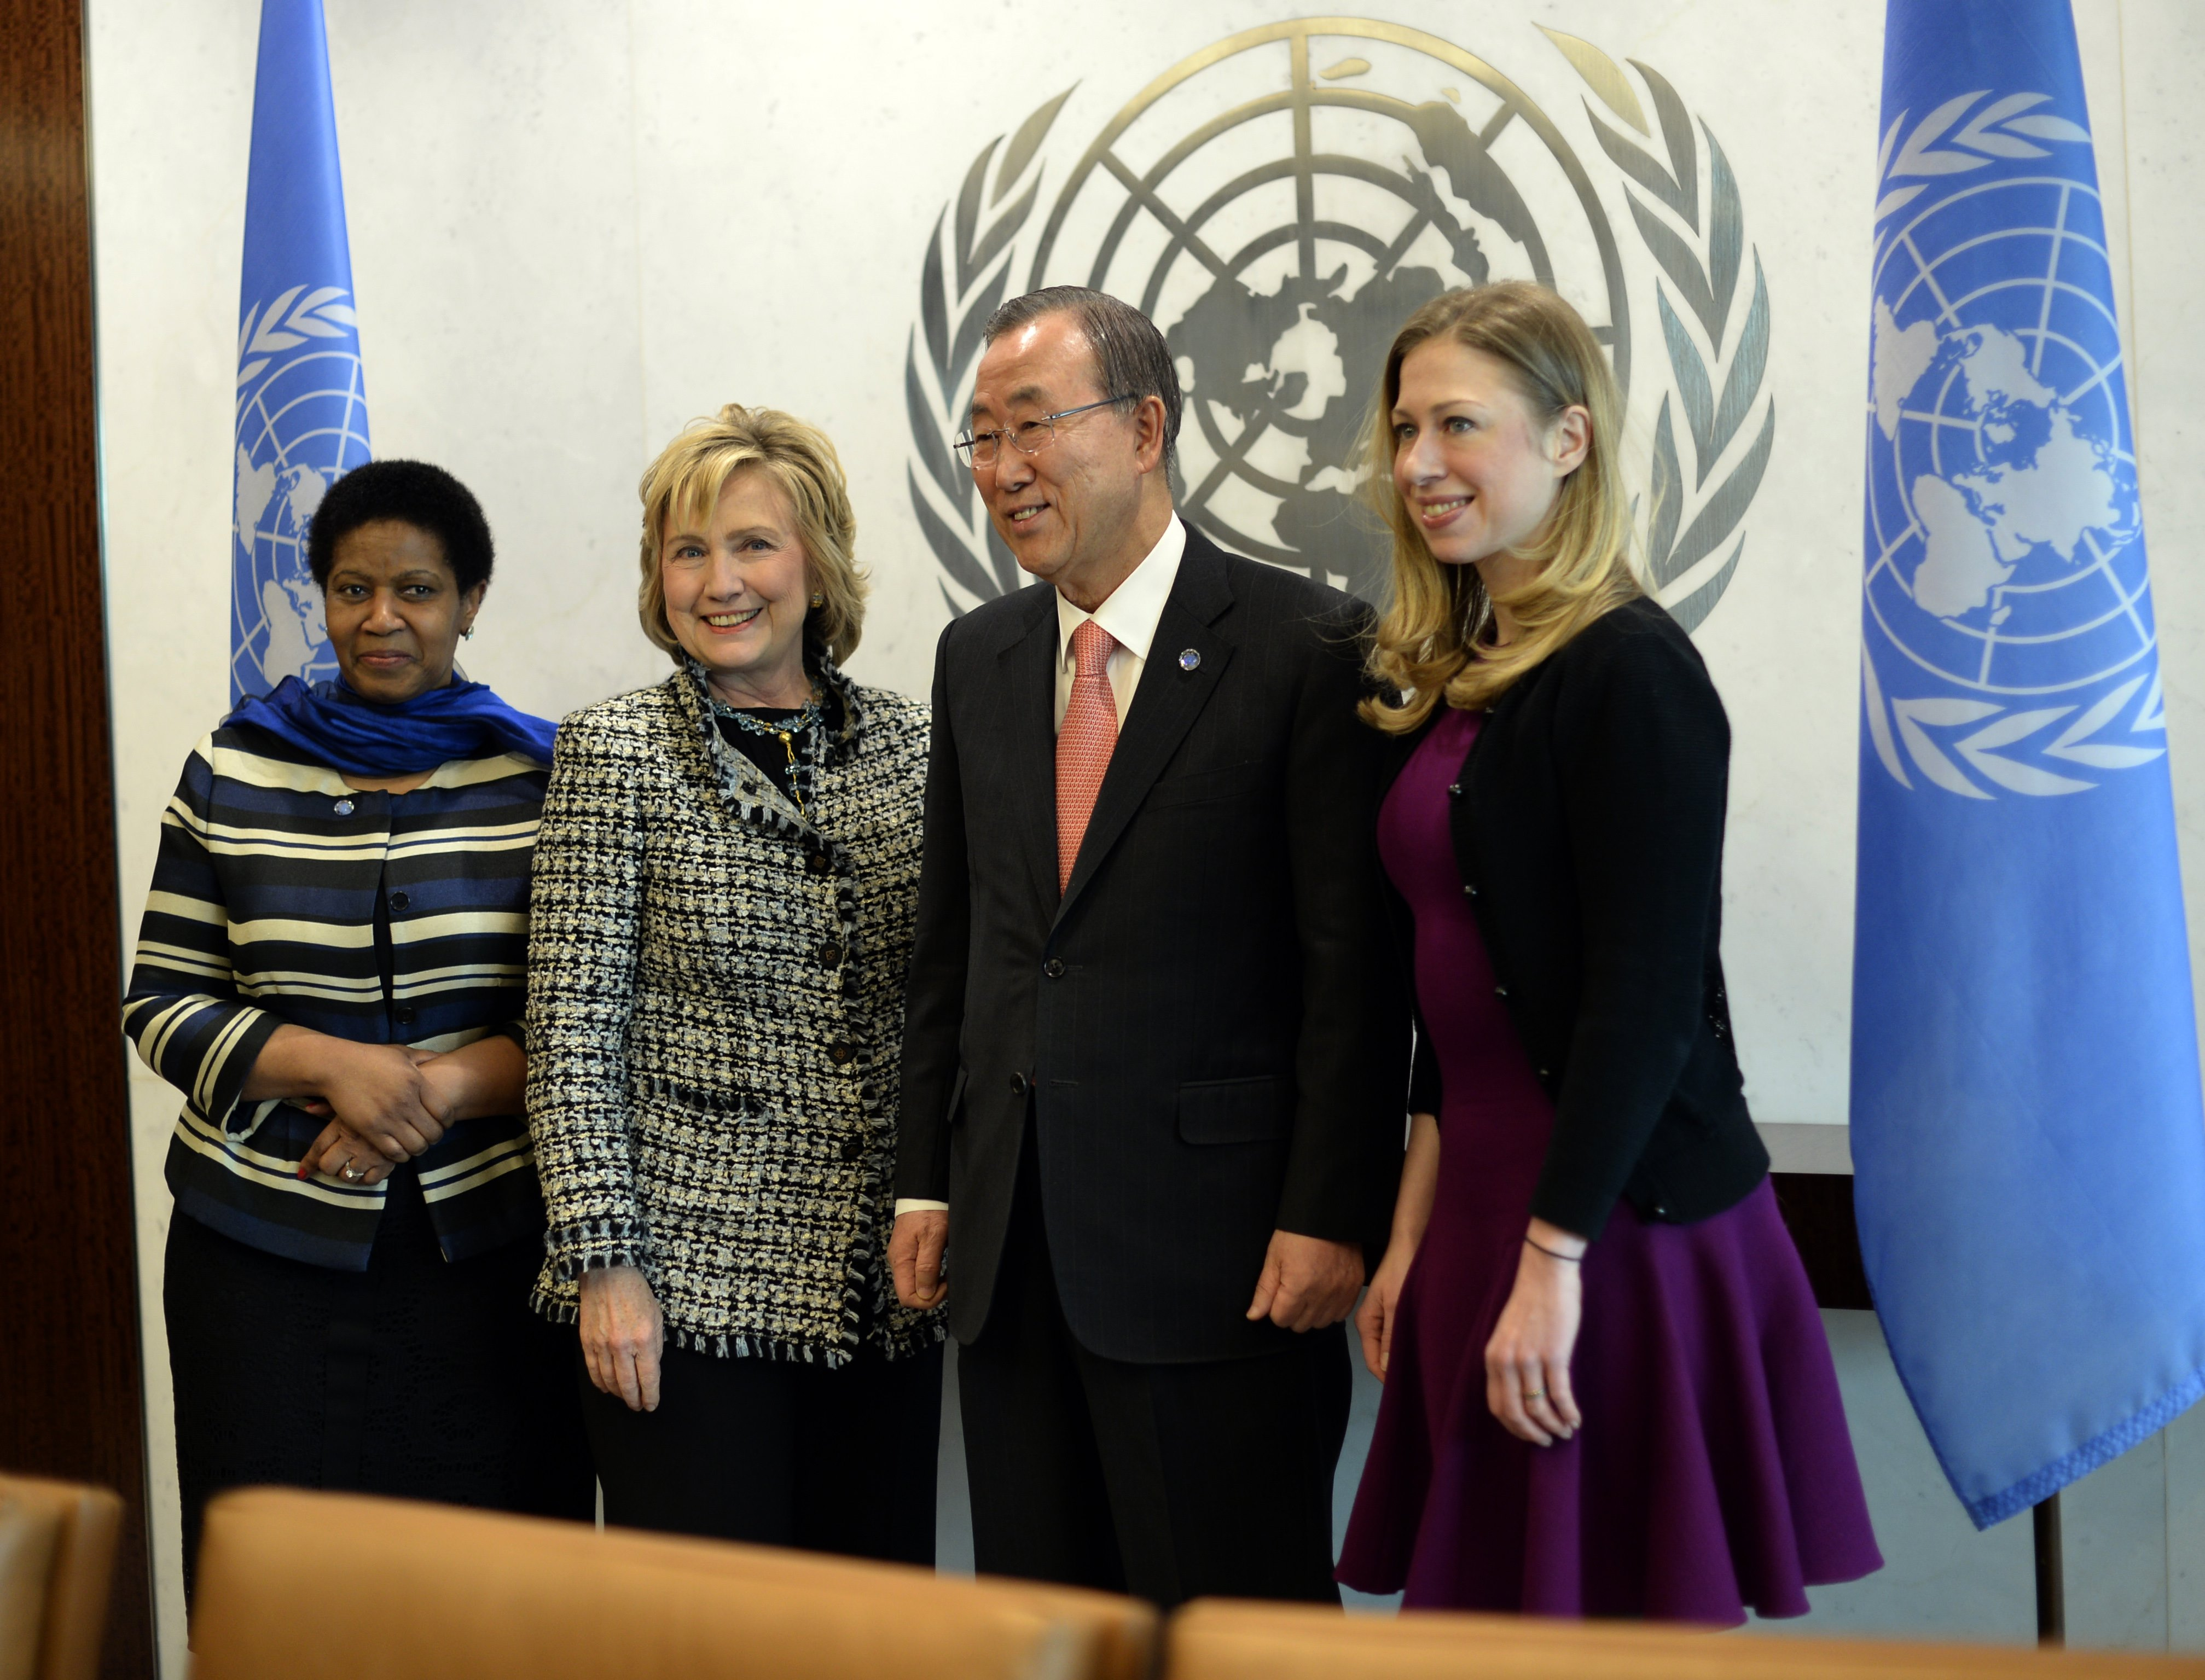 UN Secretary-General Ban Ki- moon (2nd R) meets with UN Women Executive Director  Phumzile Mlambo-Ngcuka (L), former US Secretary of State Hillary Clinton (2nd L) and her daughter Chelsea Clinton at United Nations headquarters in New York on February 4, 2014.    (TIMOTHY A. CLARY--AFP/Getty Images)